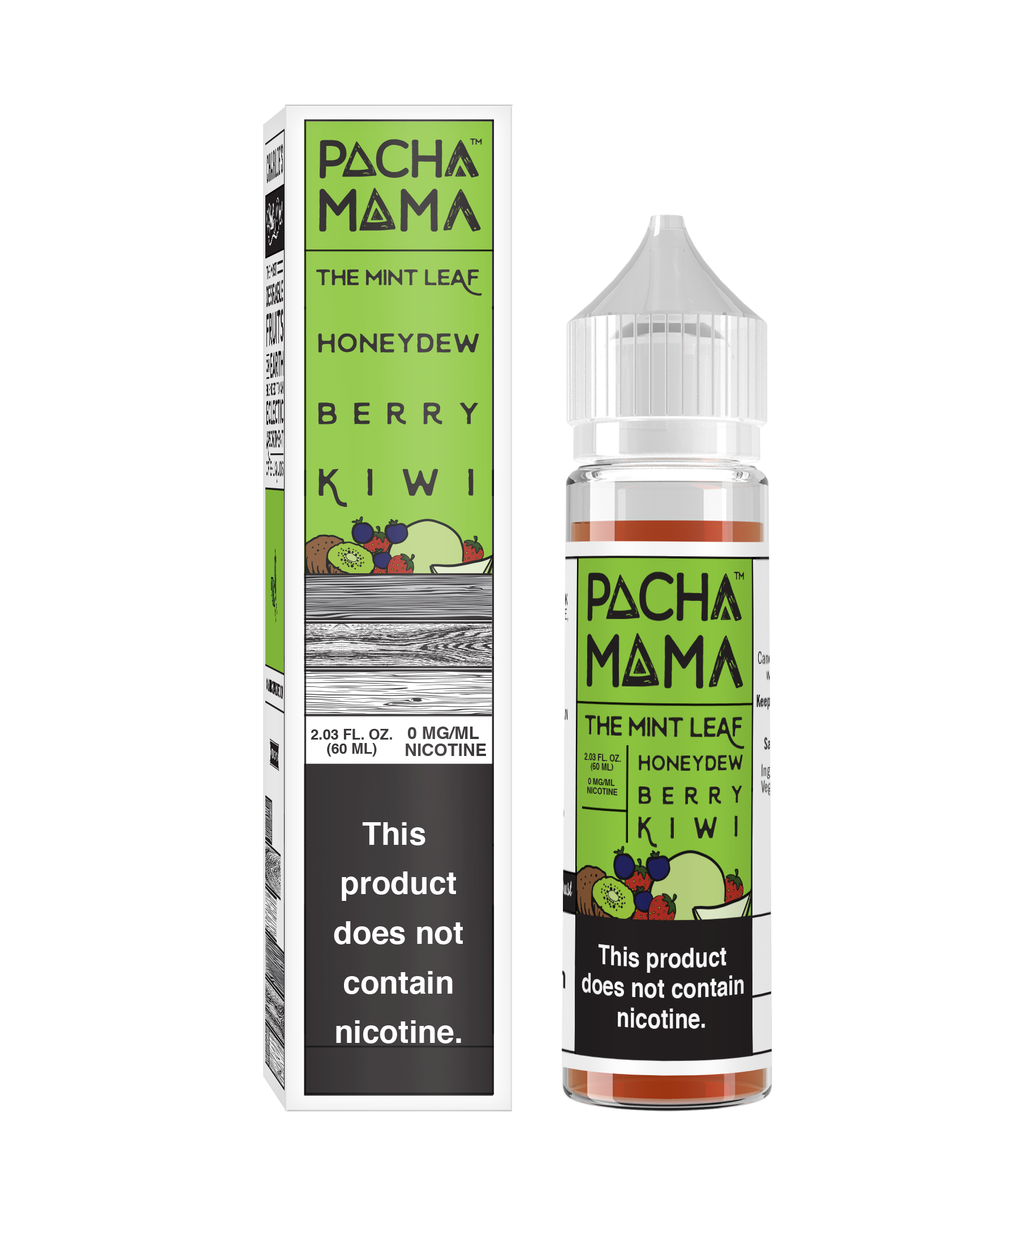 PACHA THE MINT LEAF HONEYDEW BERRY KIWI 60ML